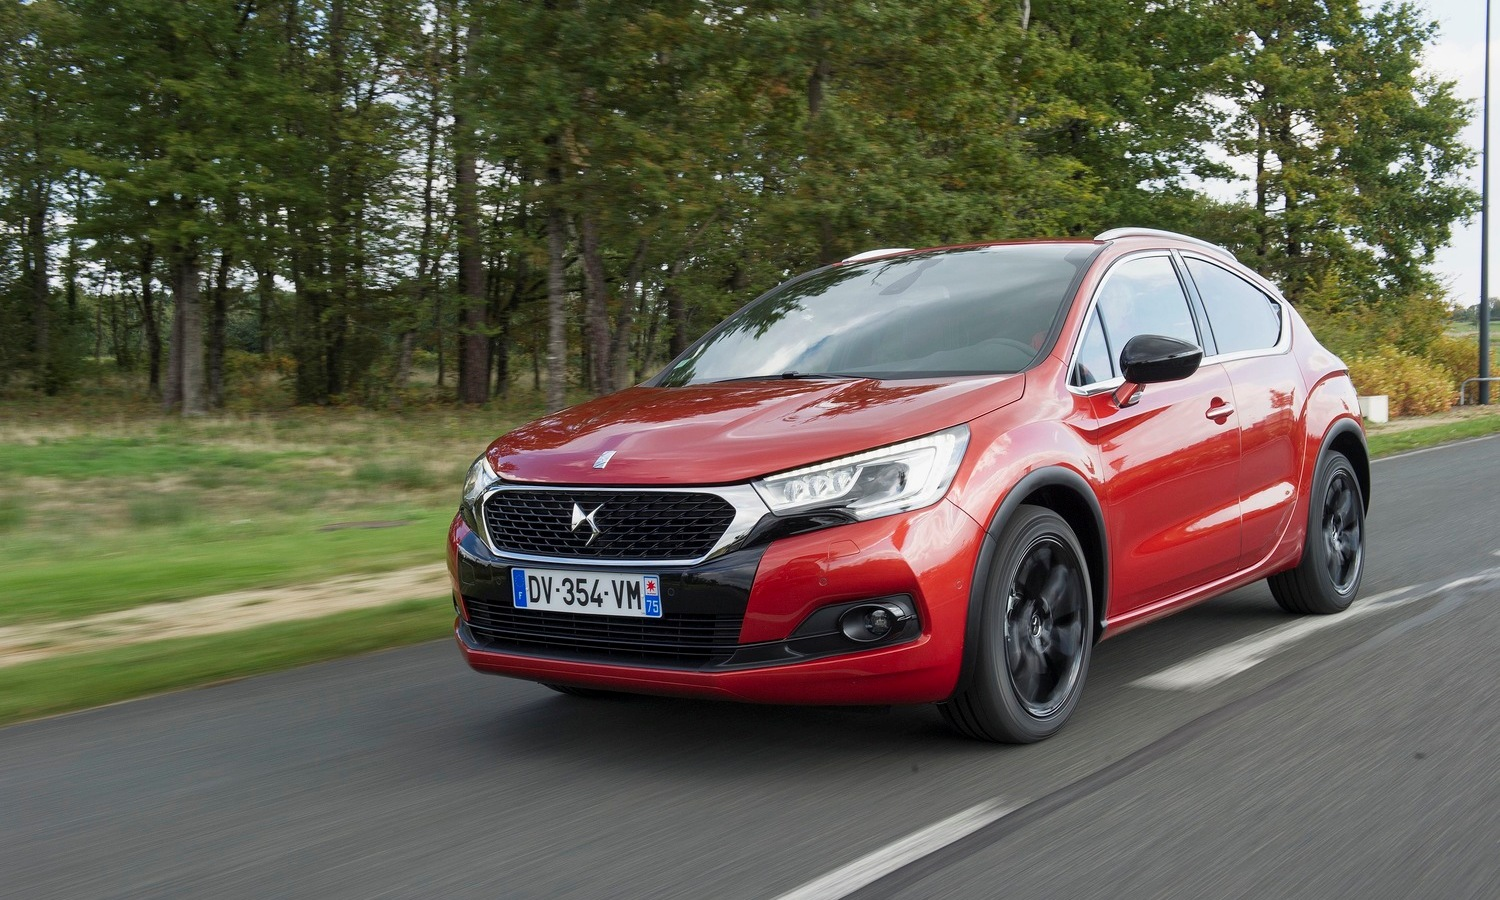 DS 4 Crossback front